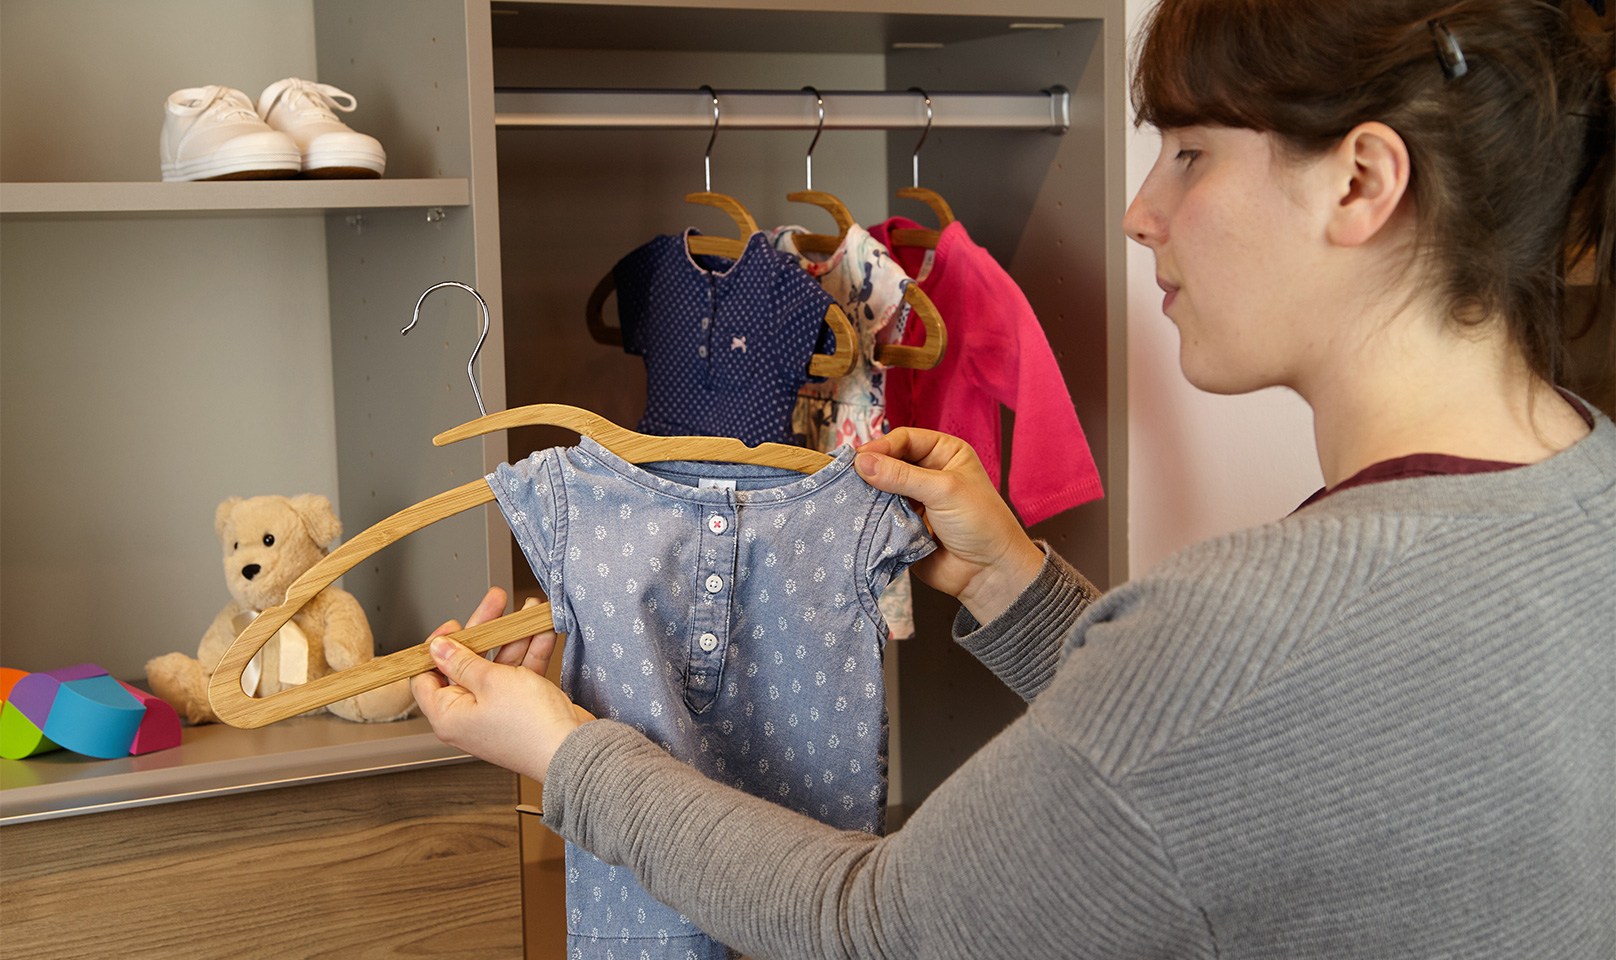 Bamboo Mozu Hanger being used with baby clothing